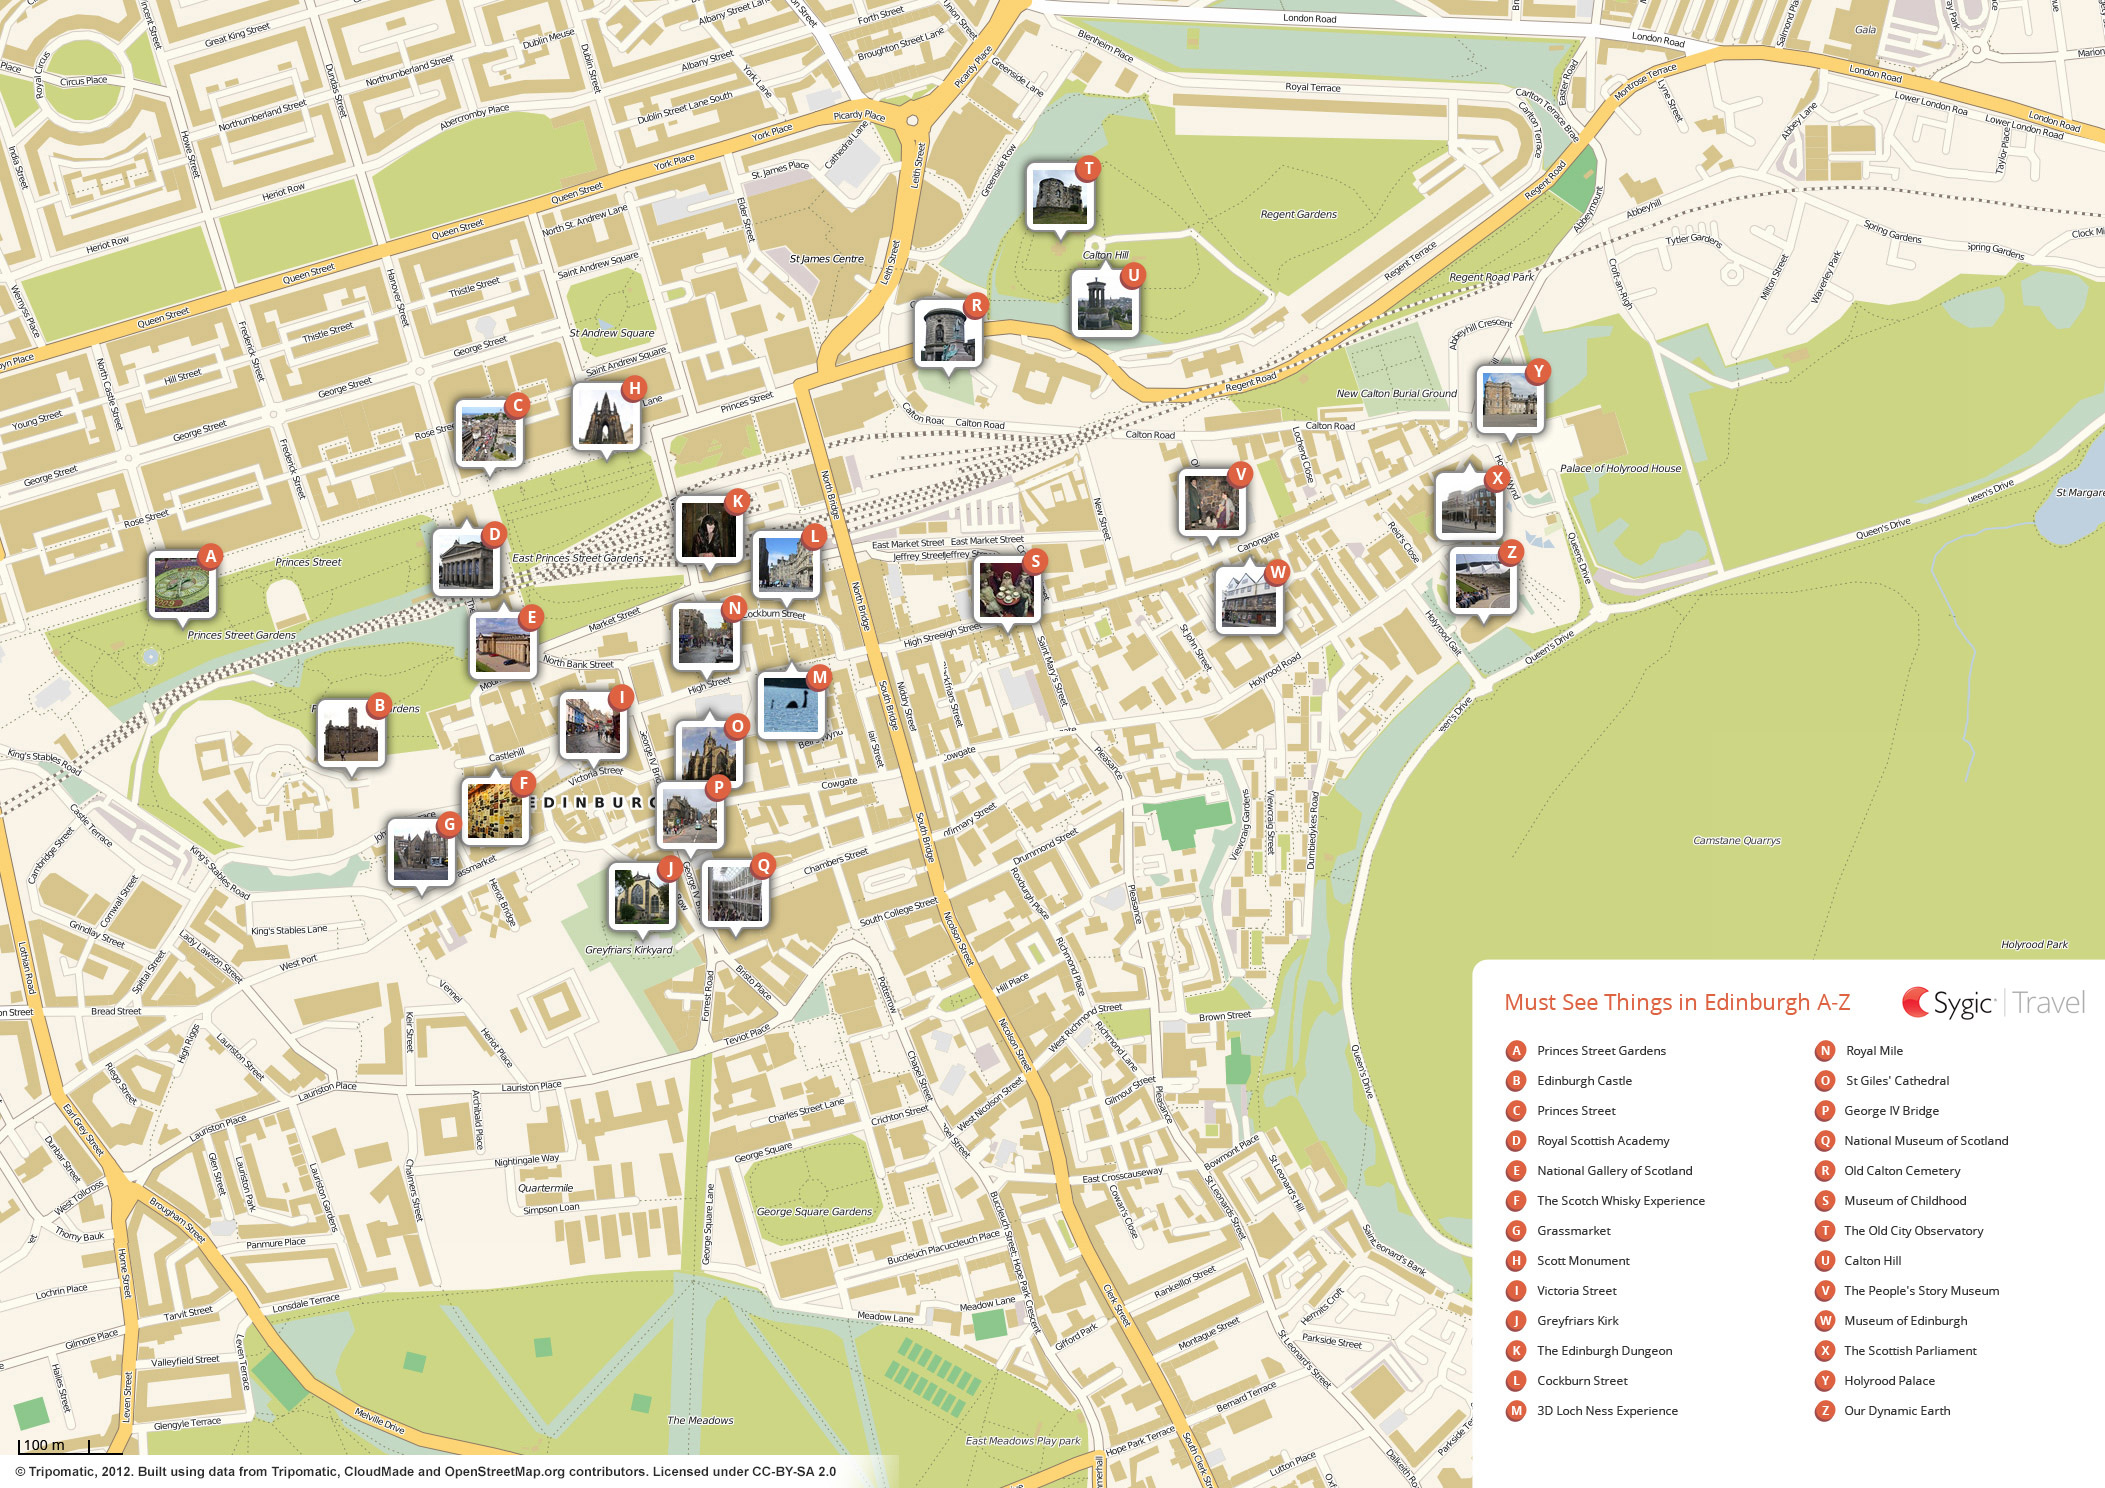 Edinburgh Printable Tourist Map – Tourist Maps Of Rome